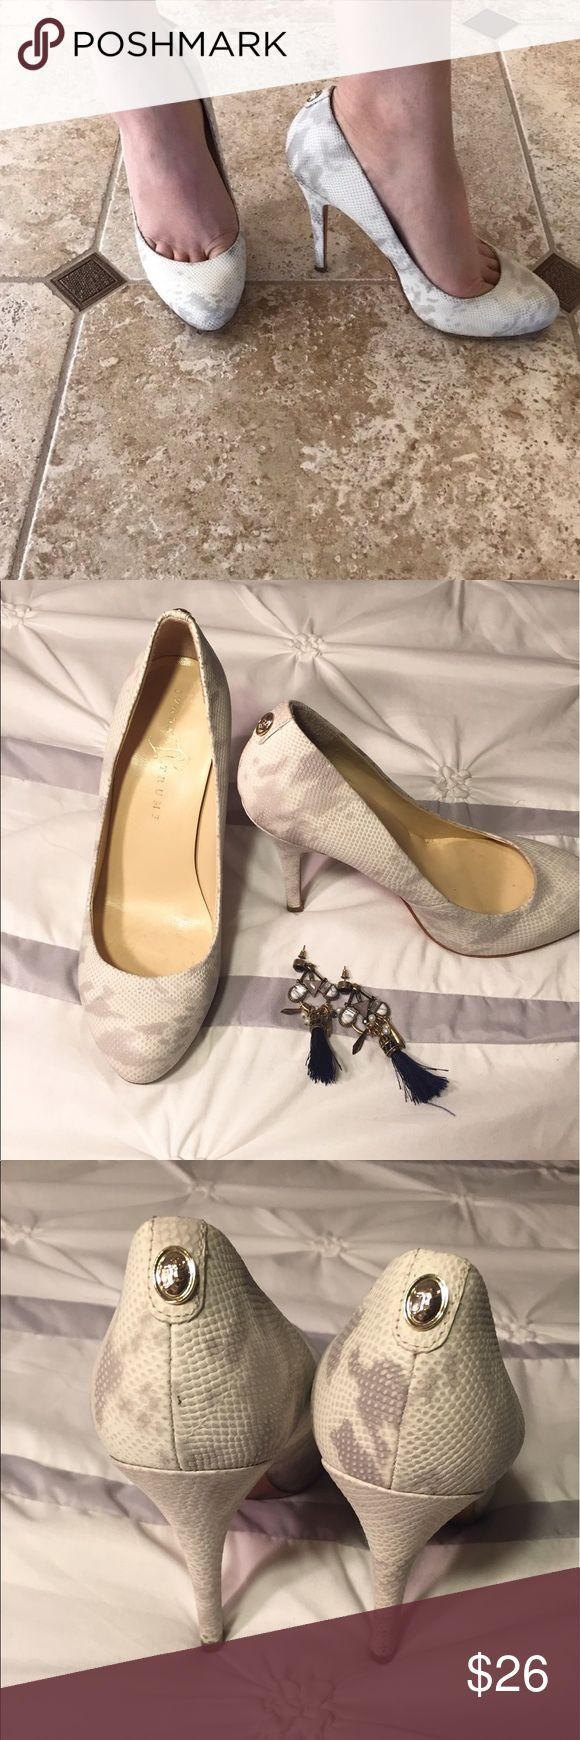 Snakeskin Ivanka Trump heels Gorgeous and in great condition. They were worn twice, and there is wear to the leather soles. Other than that they are in excellent condition. 4 1/2 inch heels Ivanka Trump Shoes Heels